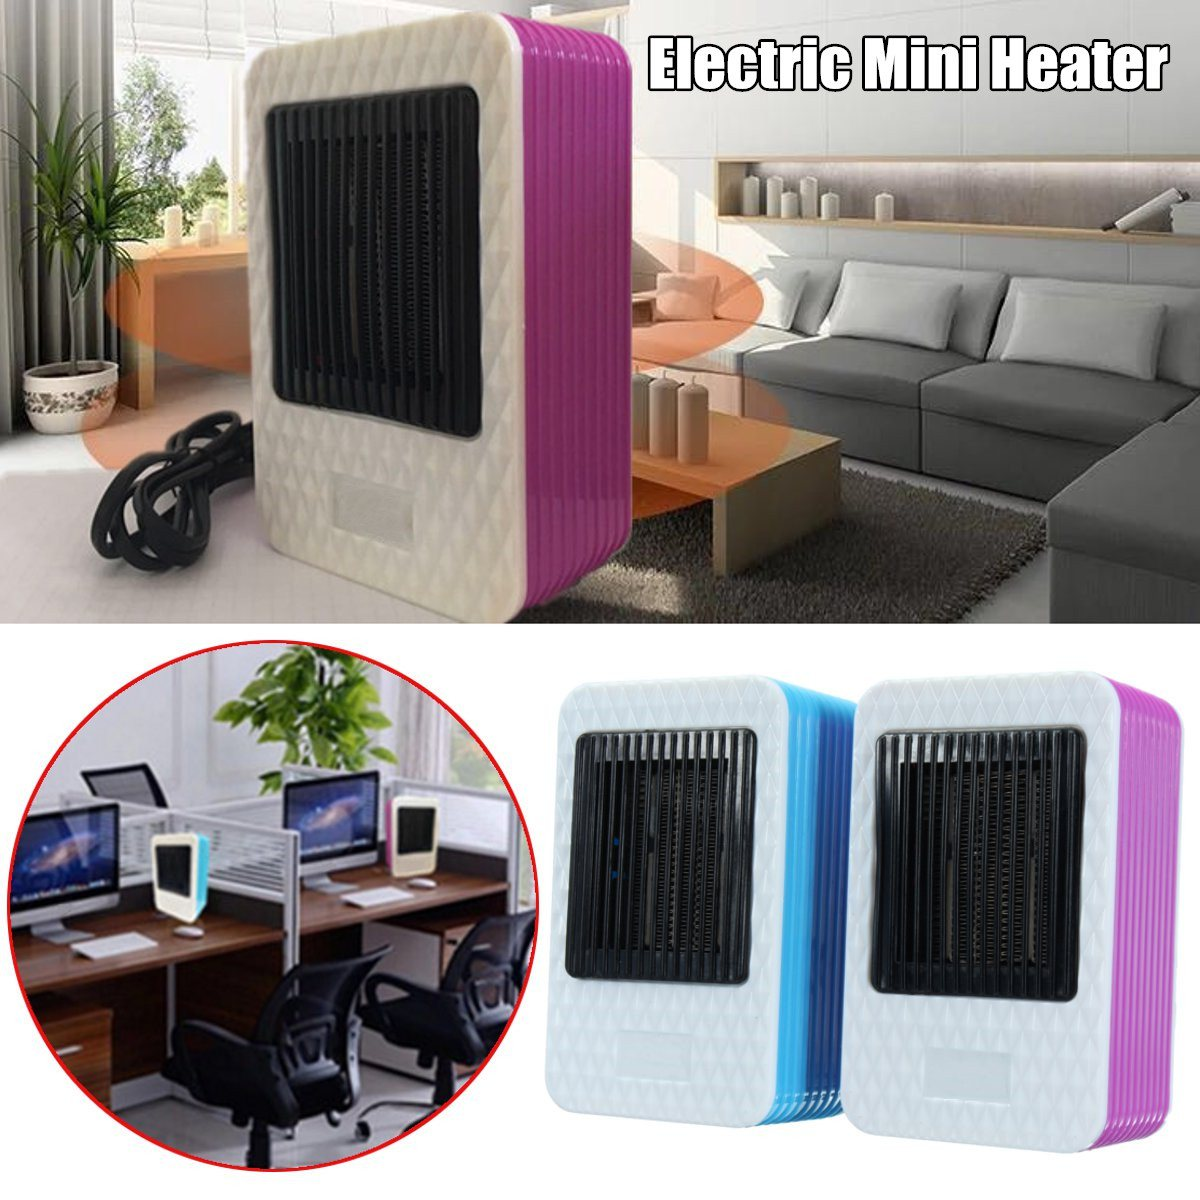 220V AC 500W Electric Air Heater Powerful Warm Blower Portable Mini Fast Heater Fan Stove Radiator Room Warmer 220v 3 gear mini electric warm air blower electric air heater room fan heater cold and warm dual purpose overheat protection